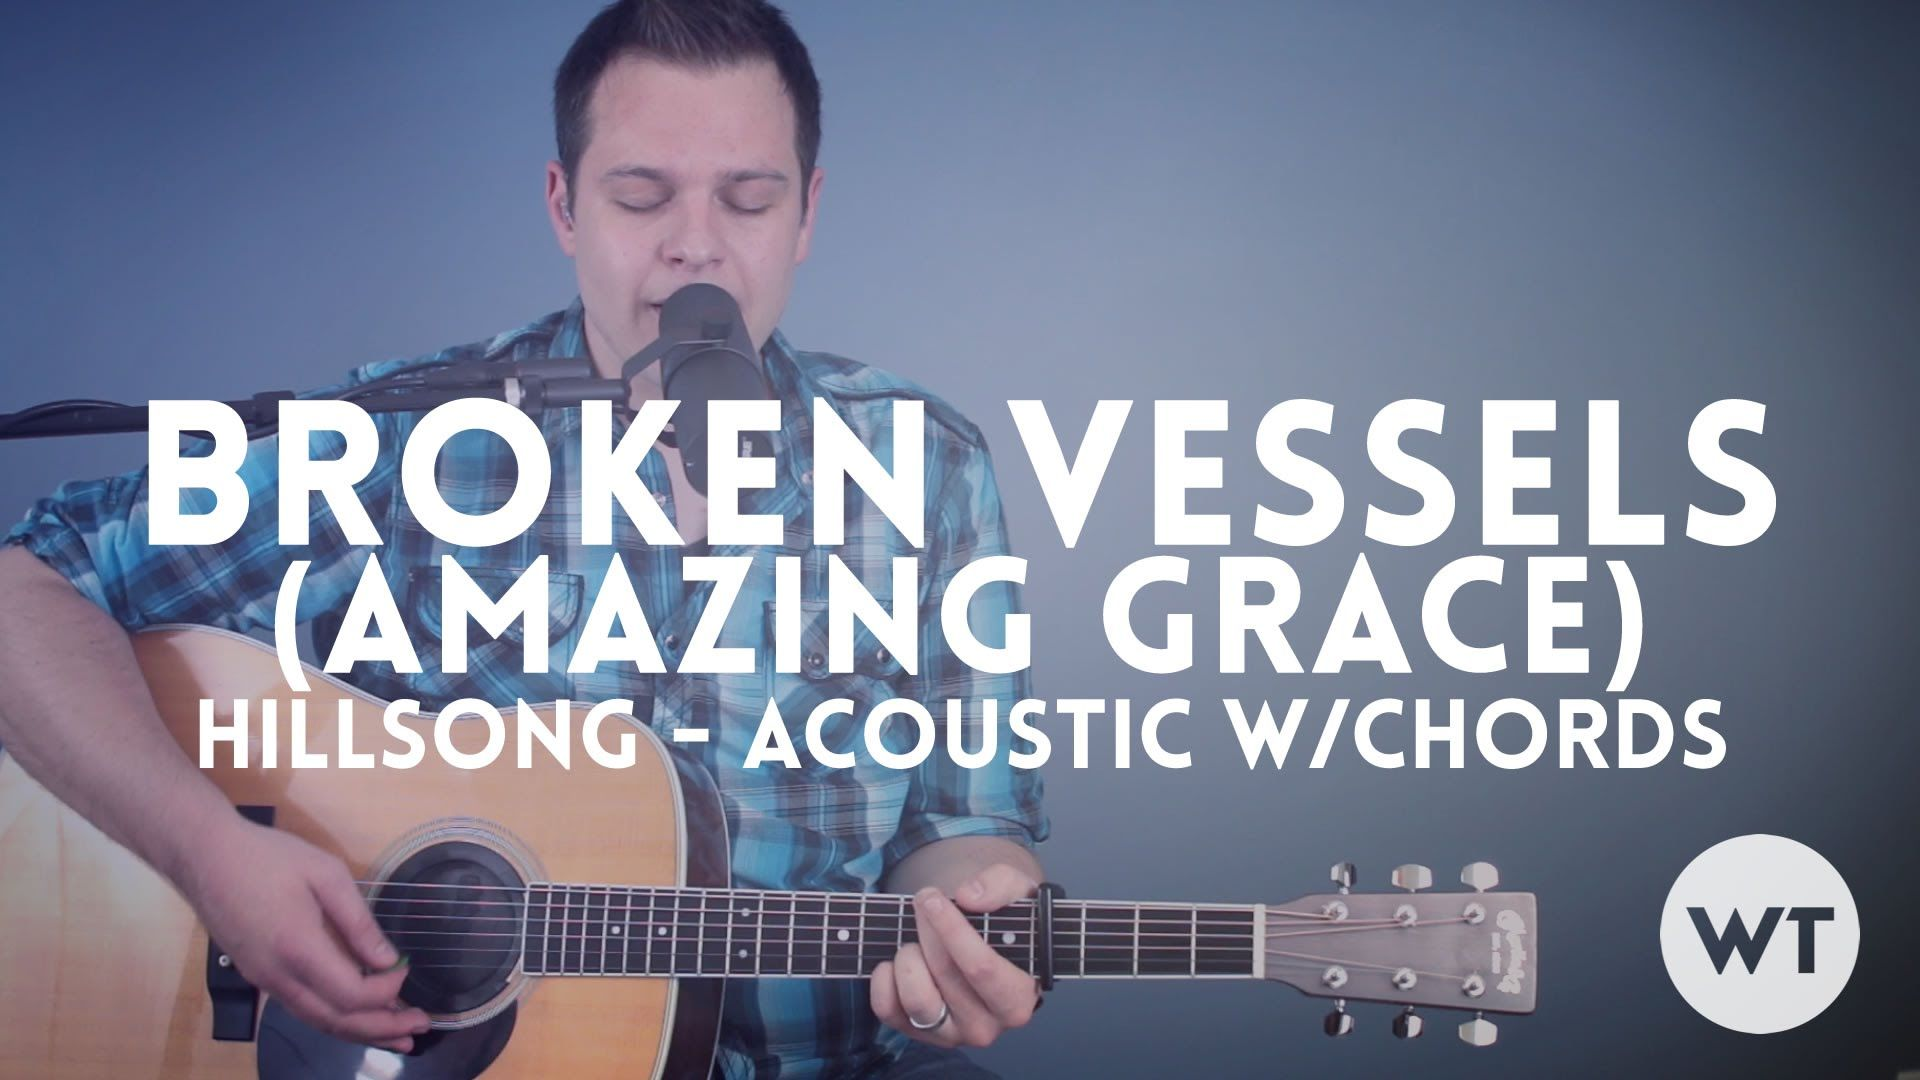 Broken Vessels Amazing Grace Hillsong Acoustic Wchords